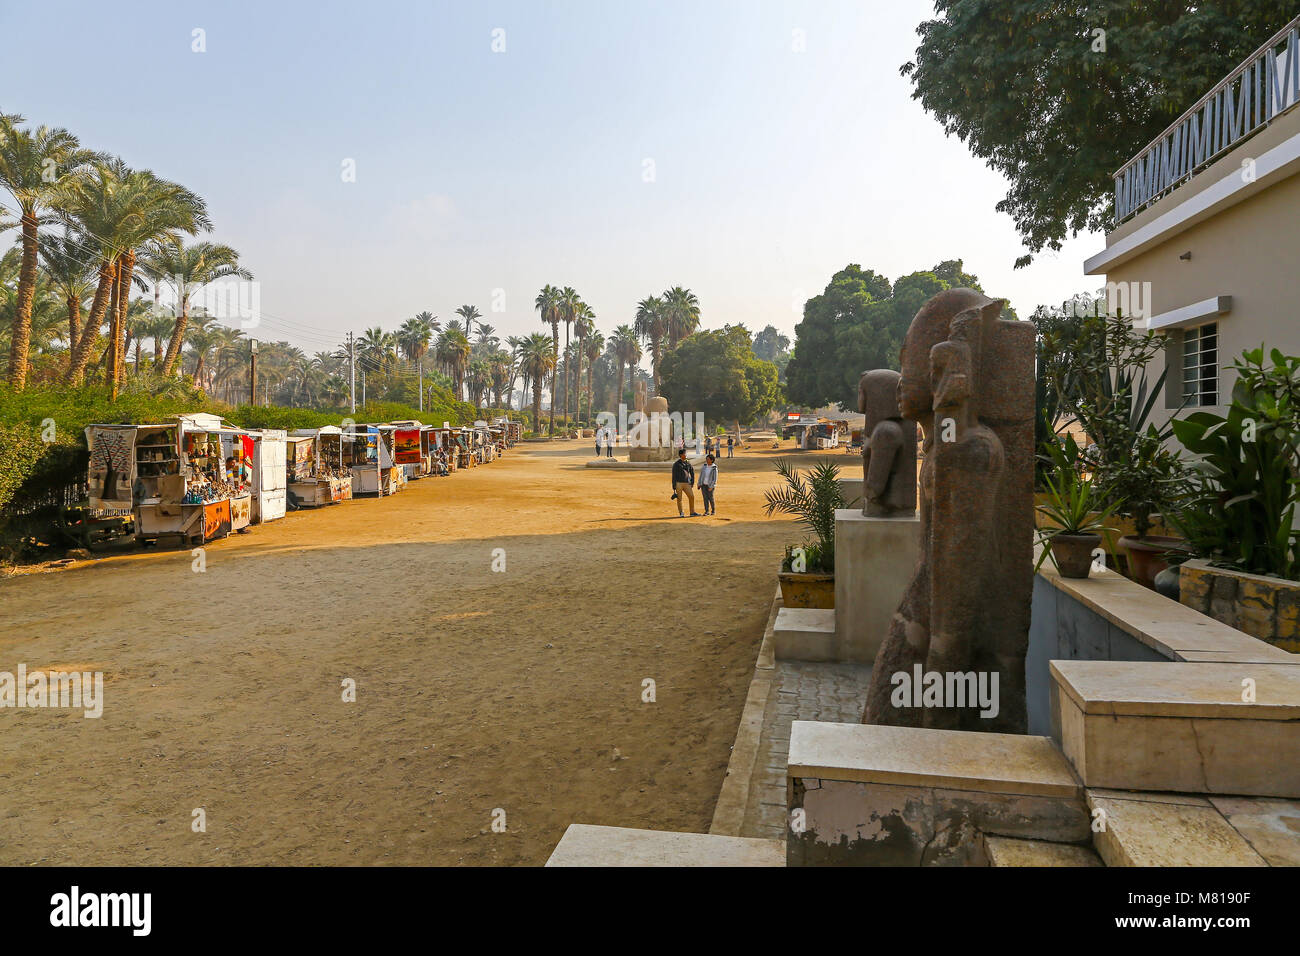 A general view of the bazars and exhibits at the open air museum at Memphis, Mit Rahinah, Al Badrashin, Egypt - Stock Image